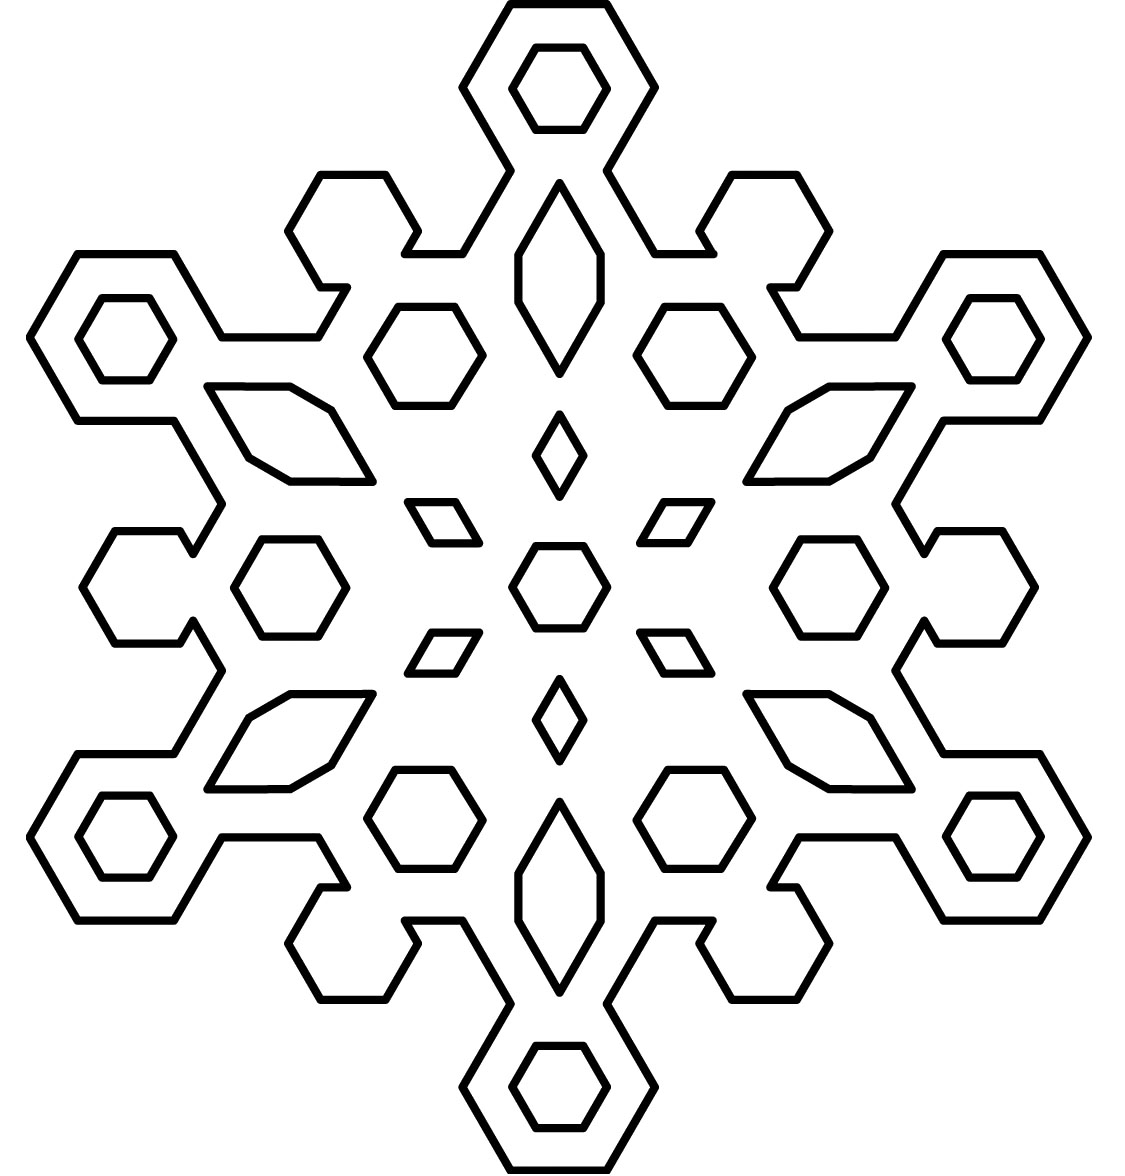 snowflakes coloring page free printable snowflake coloring pages for kids snowflakes page coloring 1 1